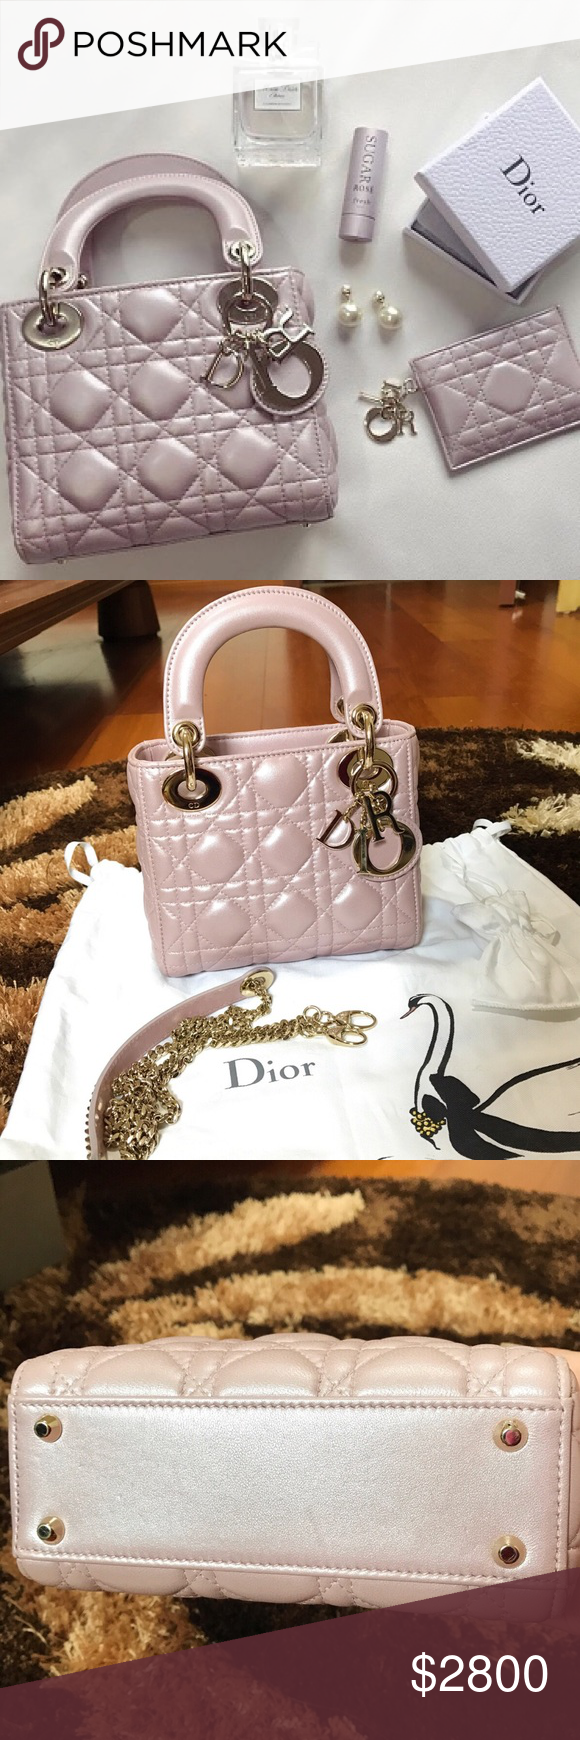 3100 Christian Dior Lady Dior Mini Pearl Pink Bag Limited edition!  Absolute find! Only 86f5c010719a5